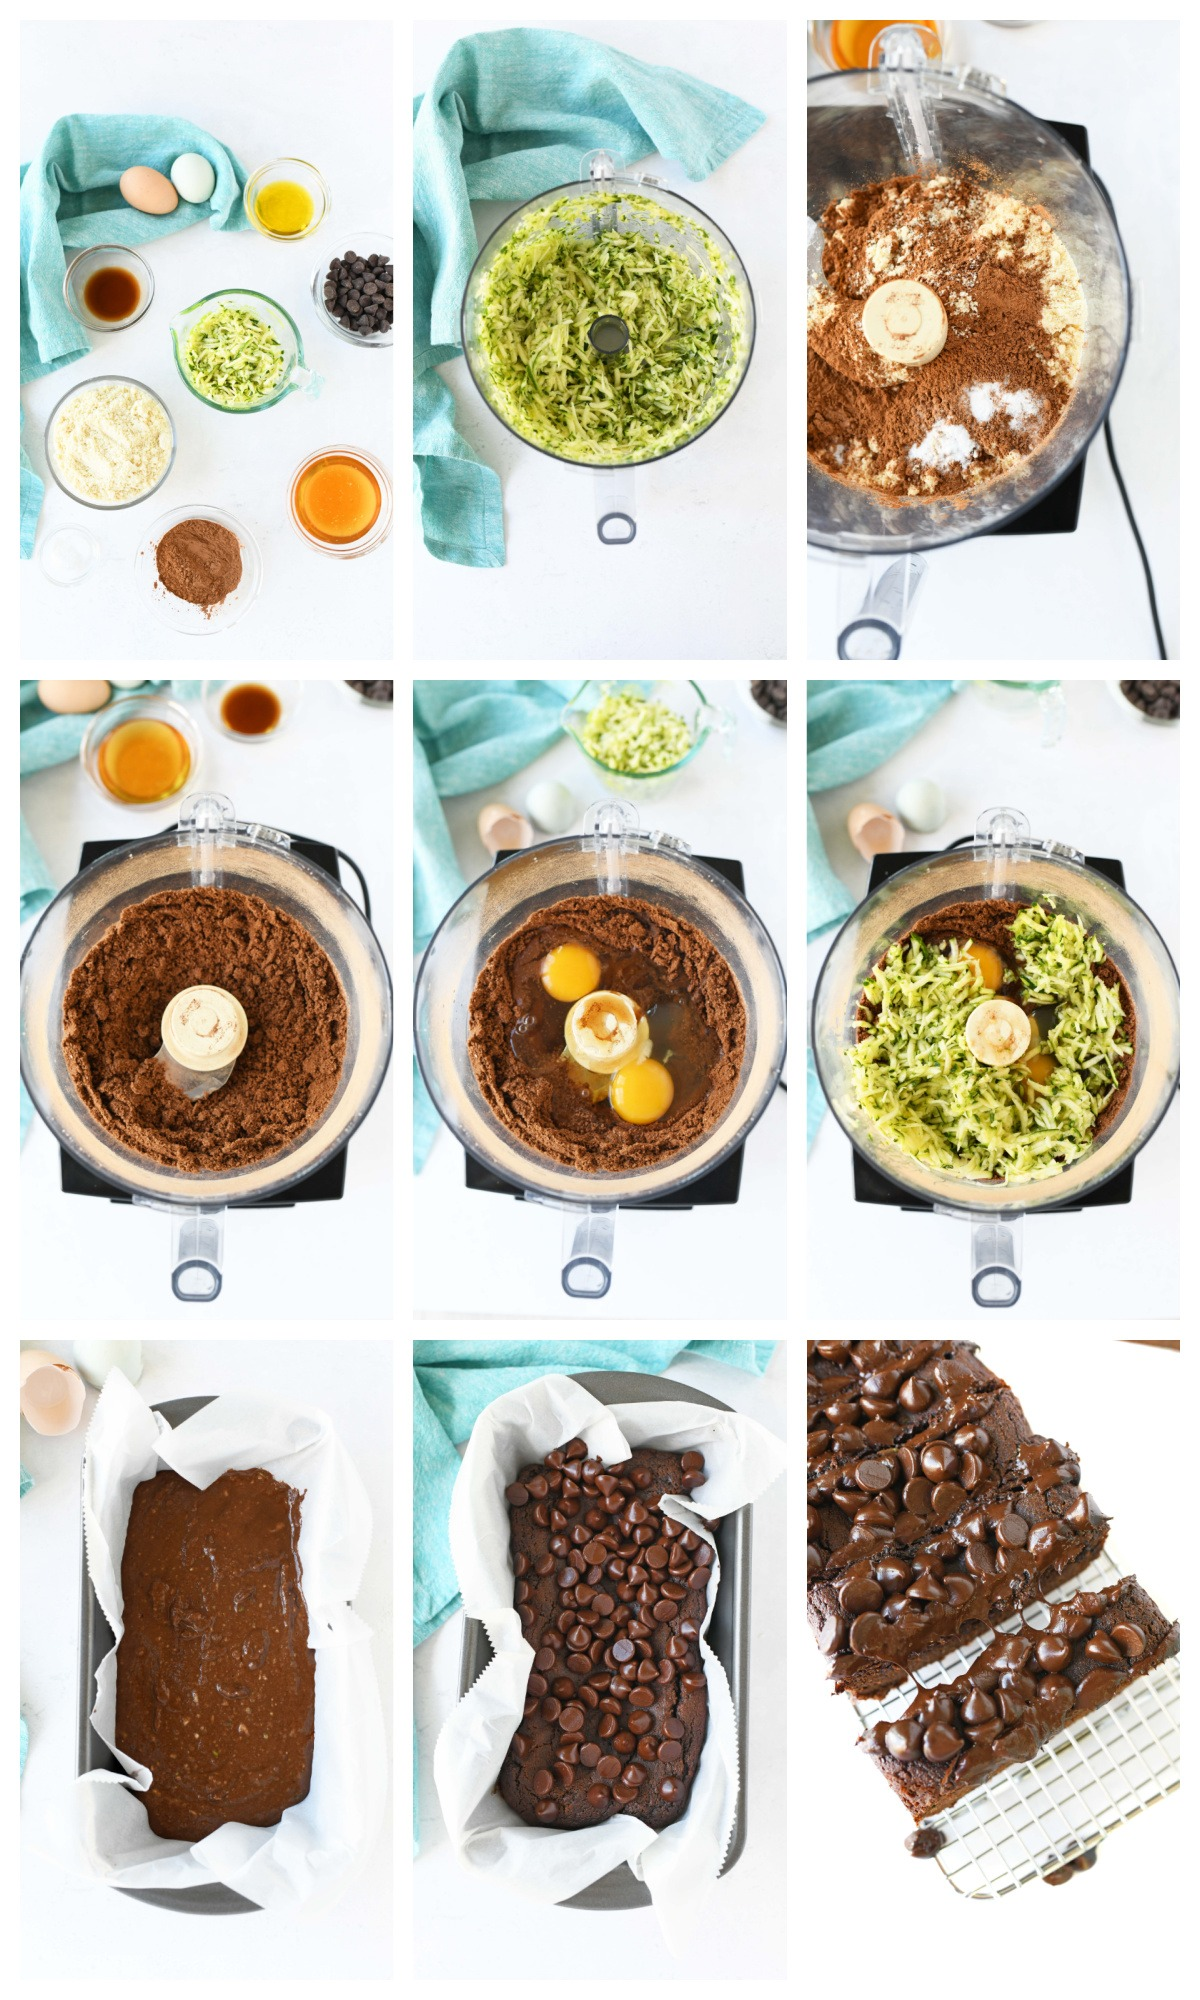 A process grid of 9 images that showcase the steps and ingredients to make chocolate paleo zucchini bread.